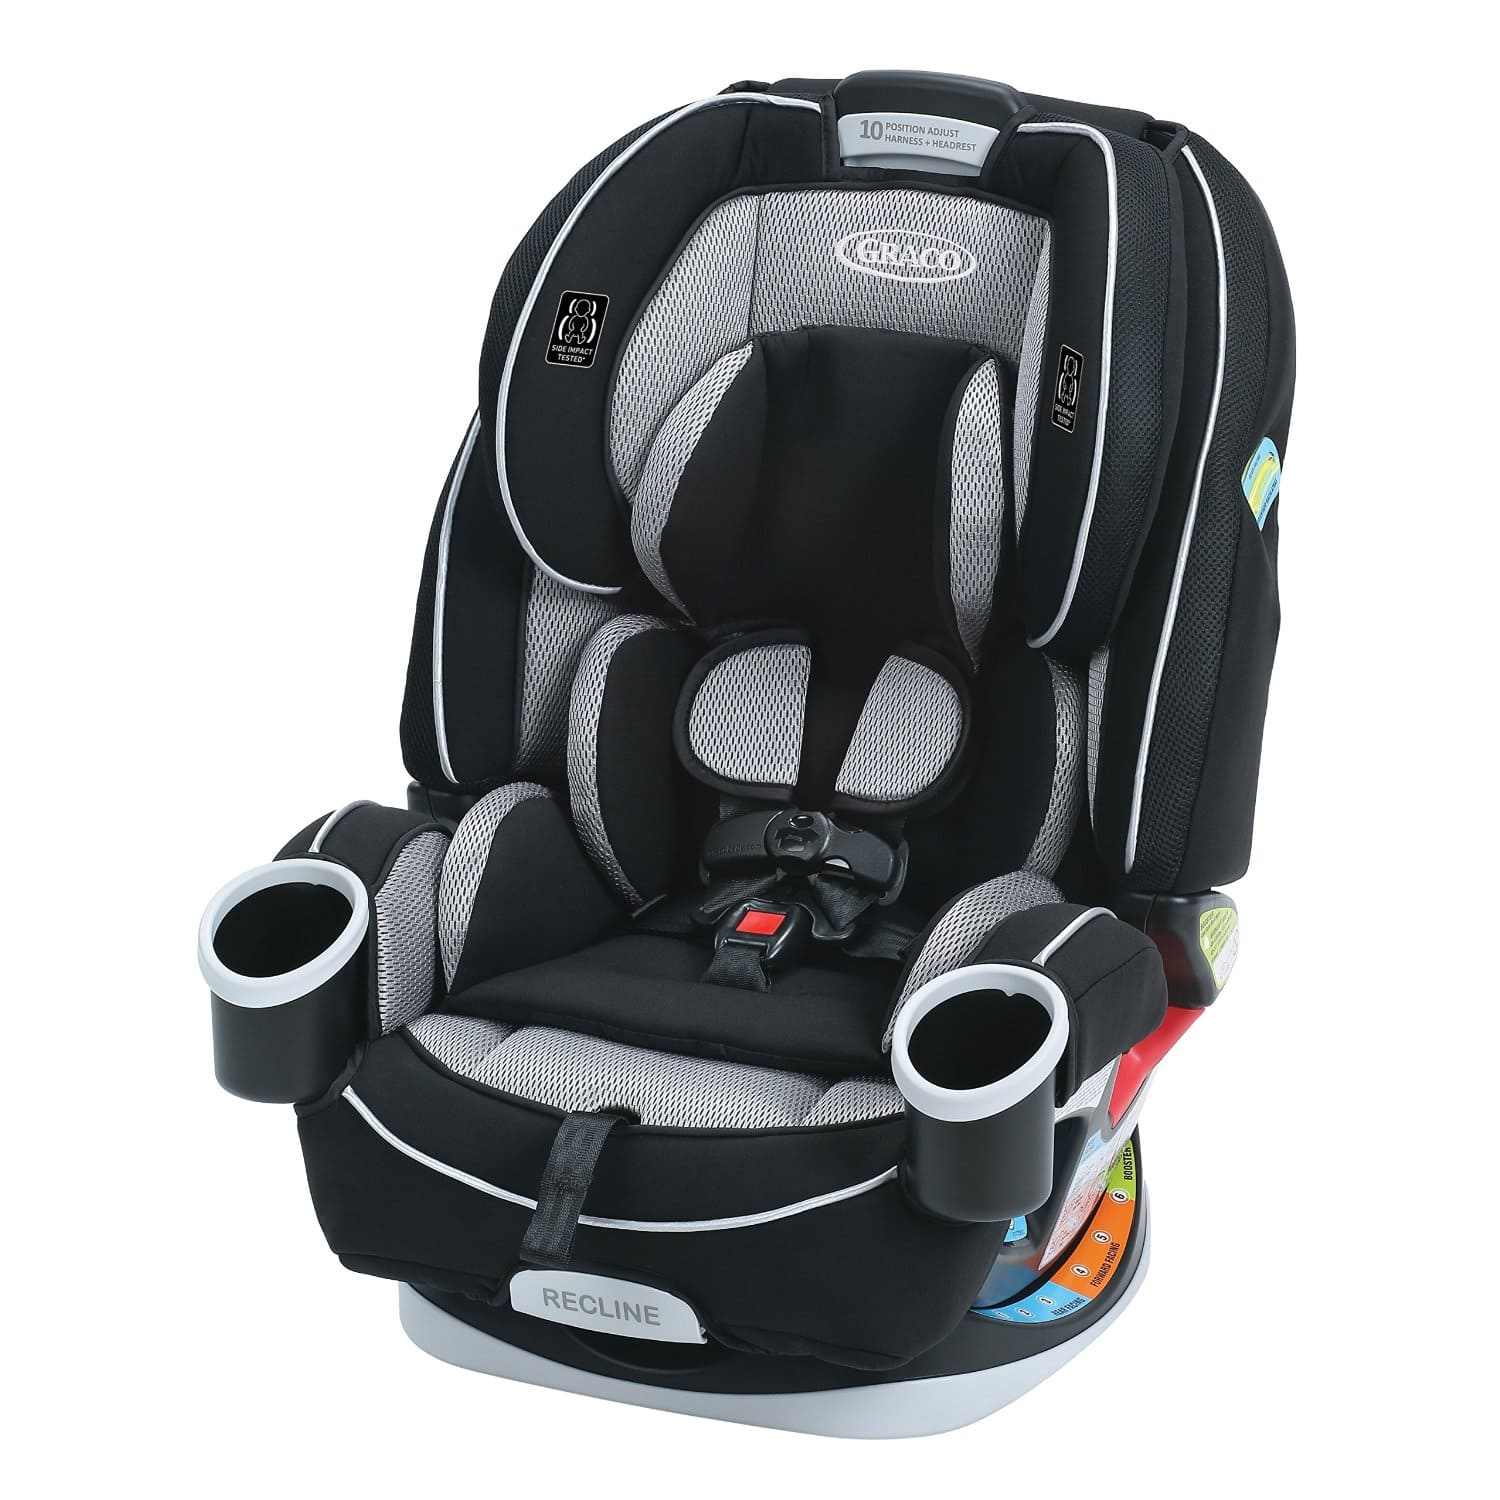 Graco 4ever All-in-One Car Seat (various colors)  $230 + Free Shipping